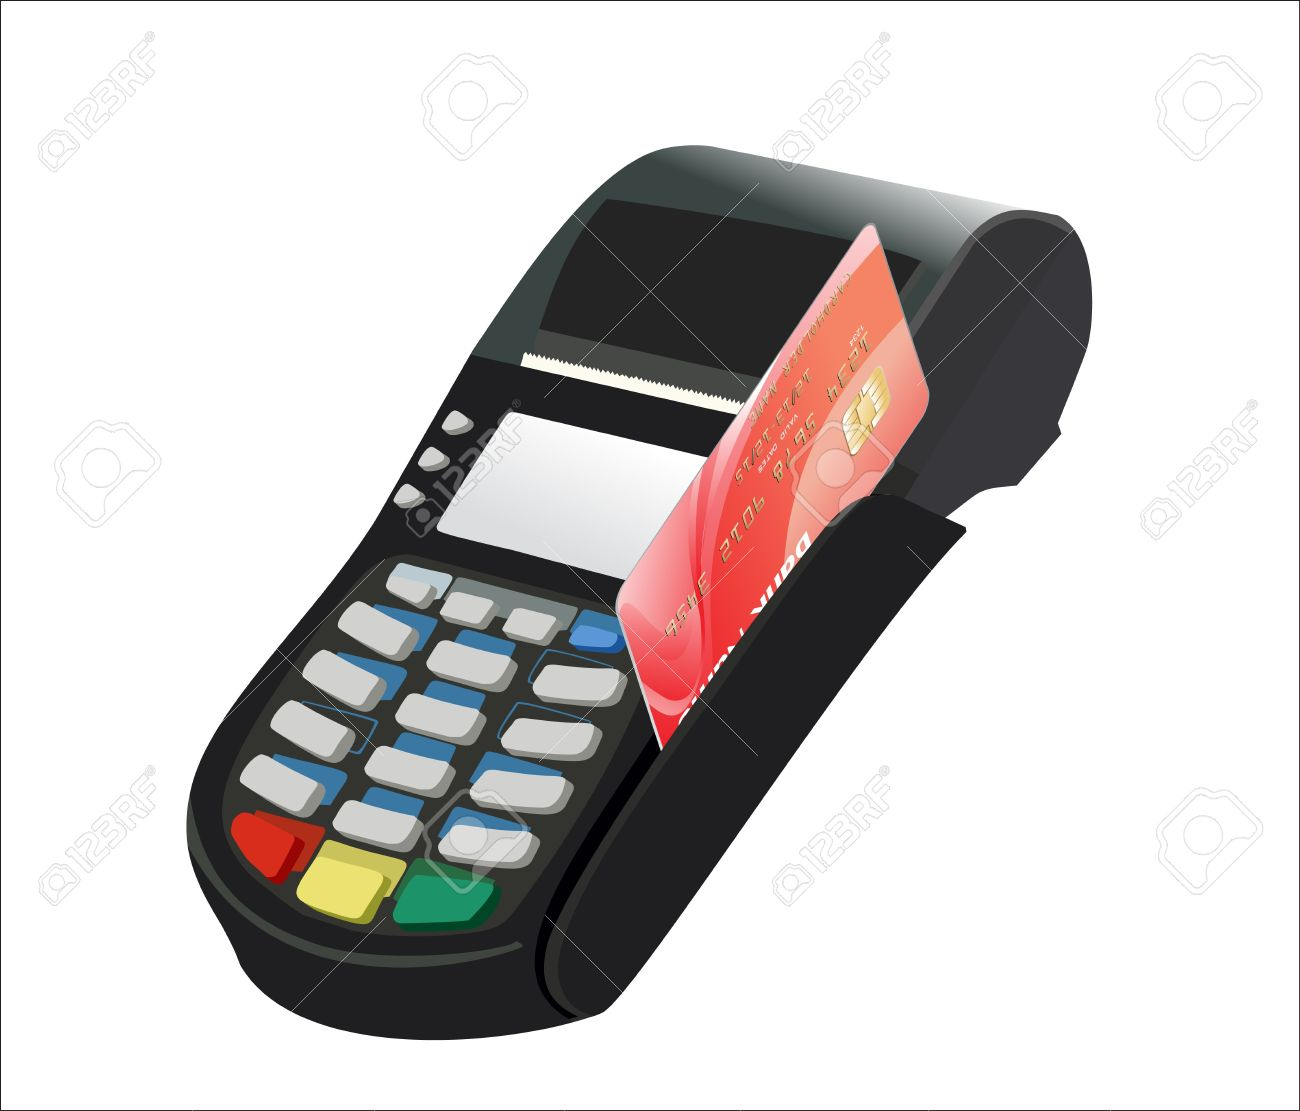 Credit card and card reader on white background Stock Vector - 17207335